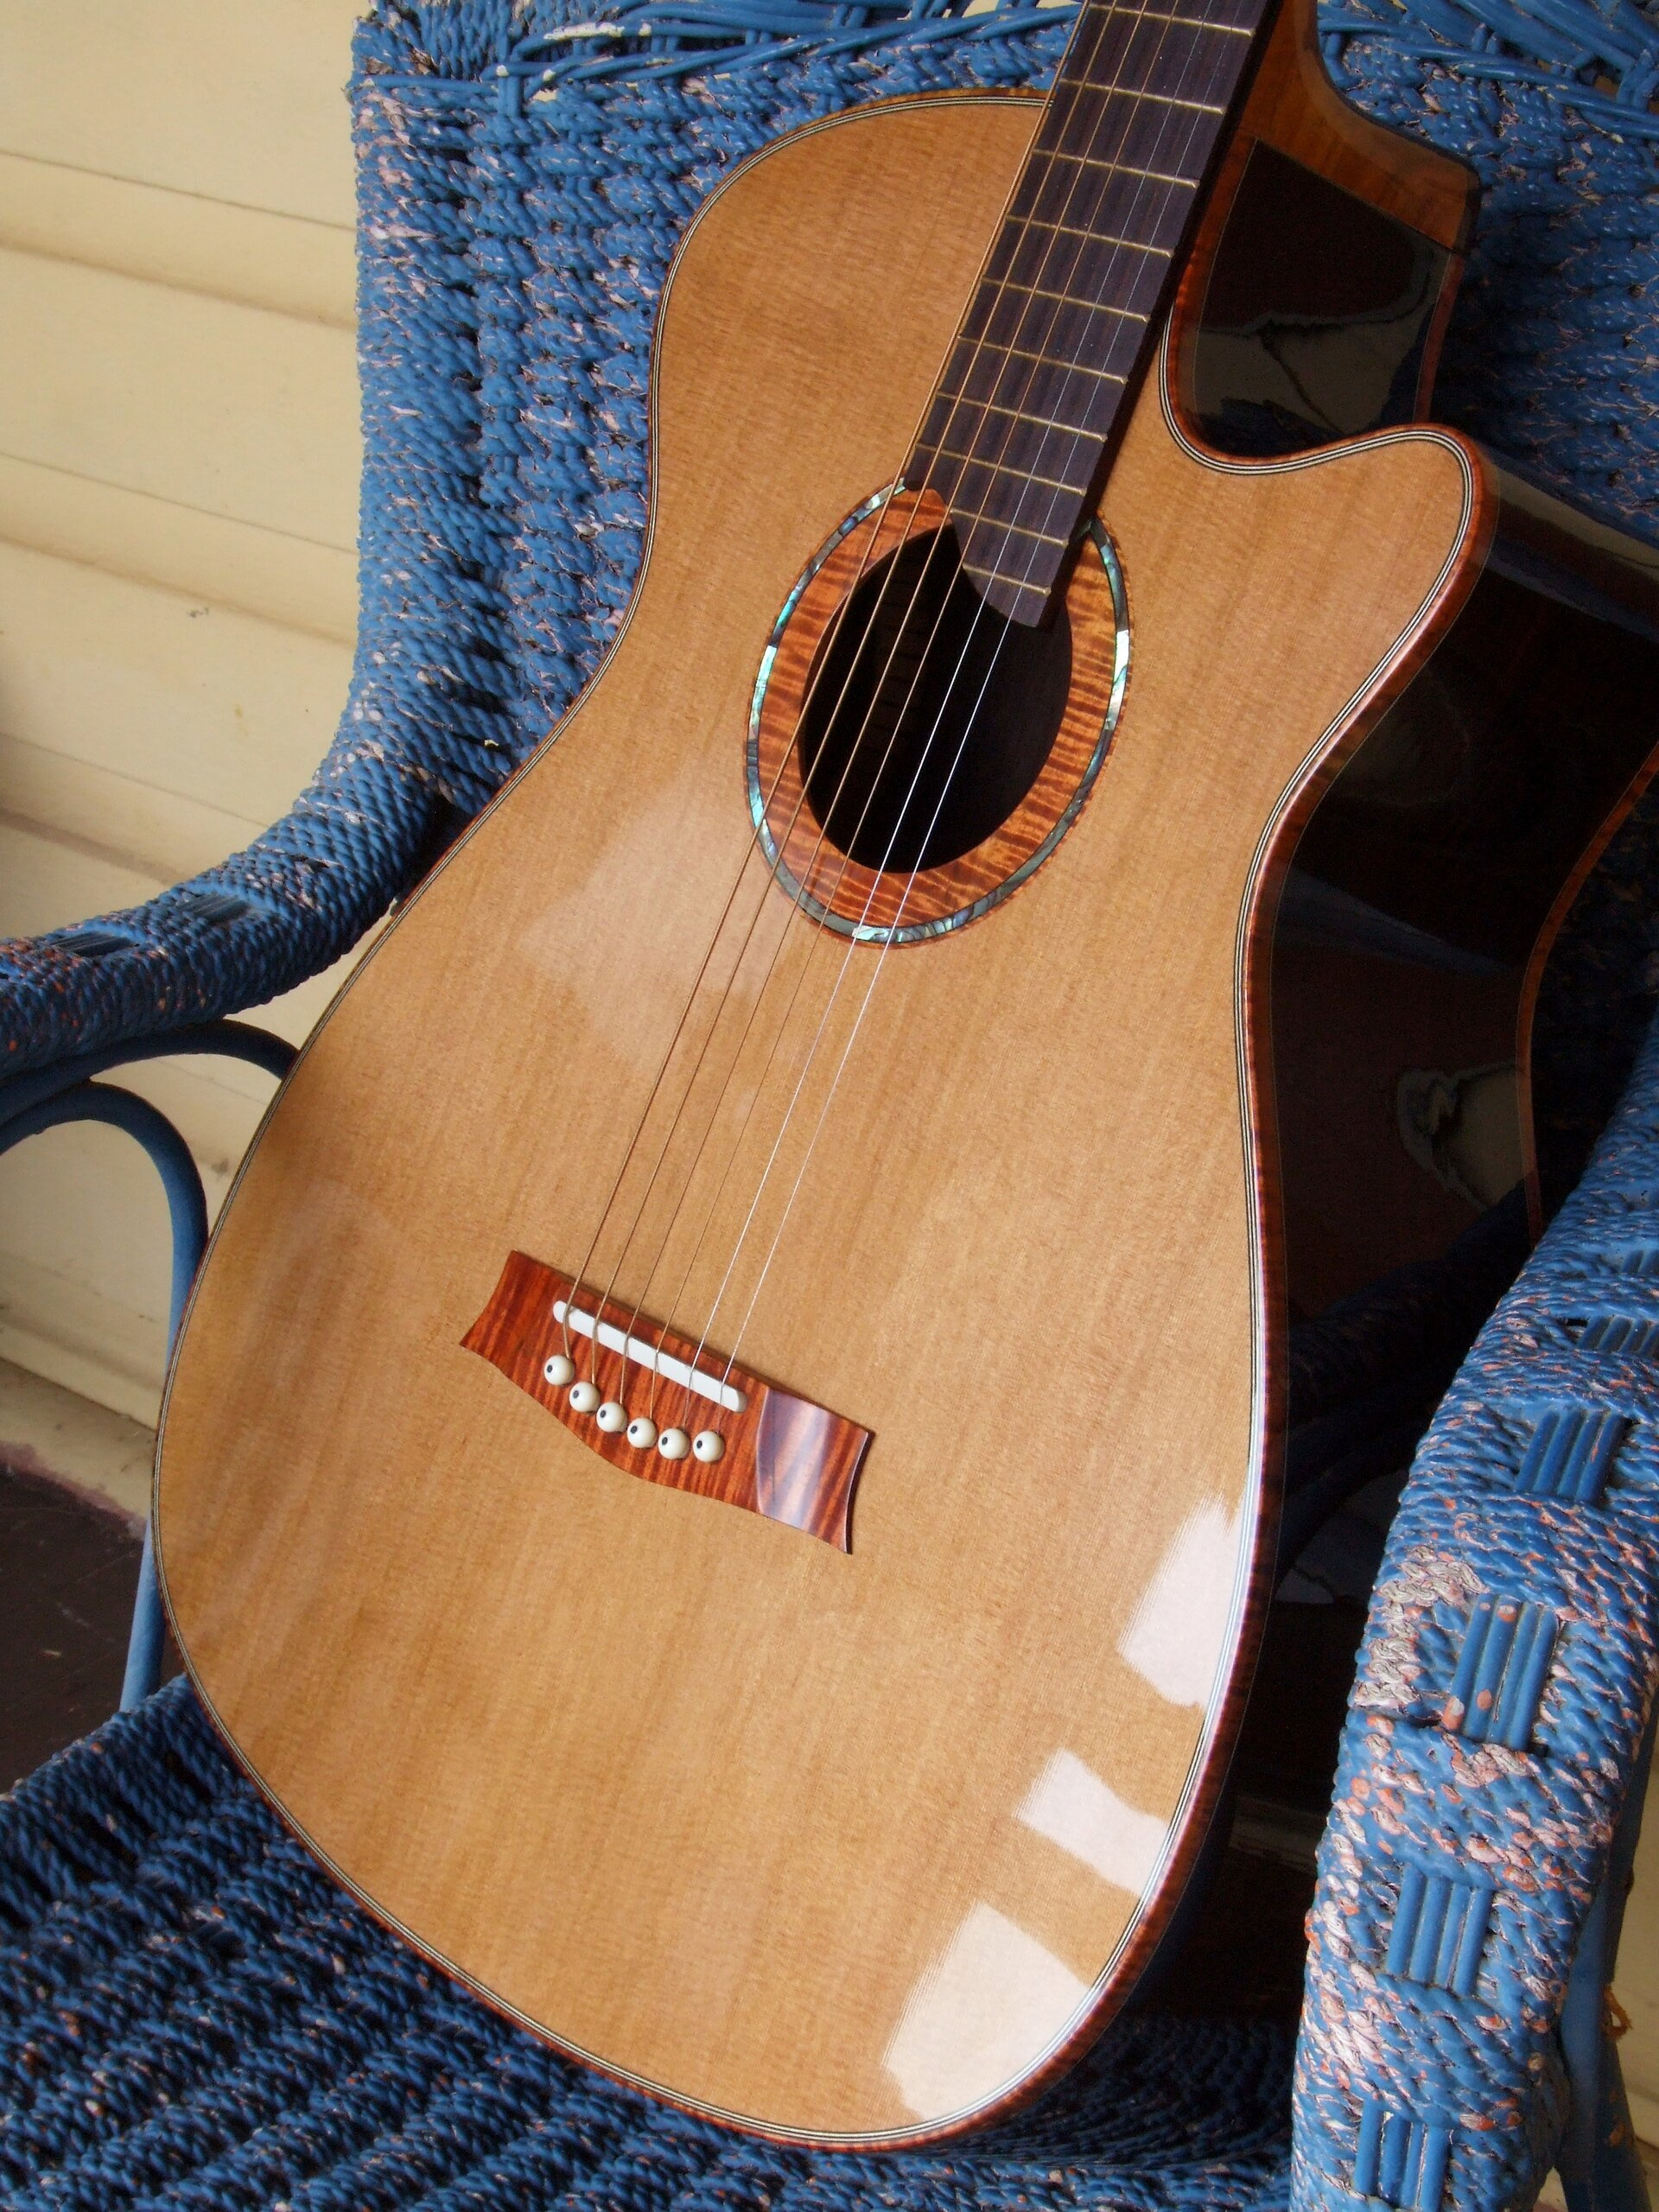 Cedar and rosewood steel string guitar sat on a blue wicker chair